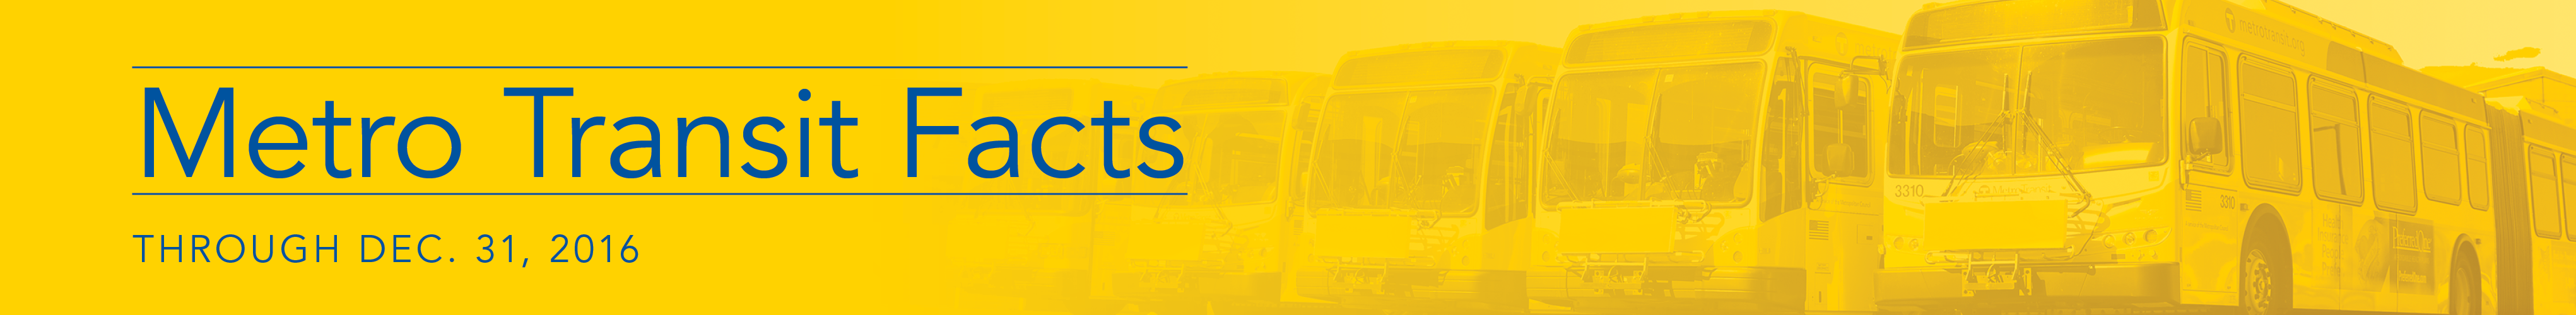 Metro Transit Facts Through Dec. 31, 2015